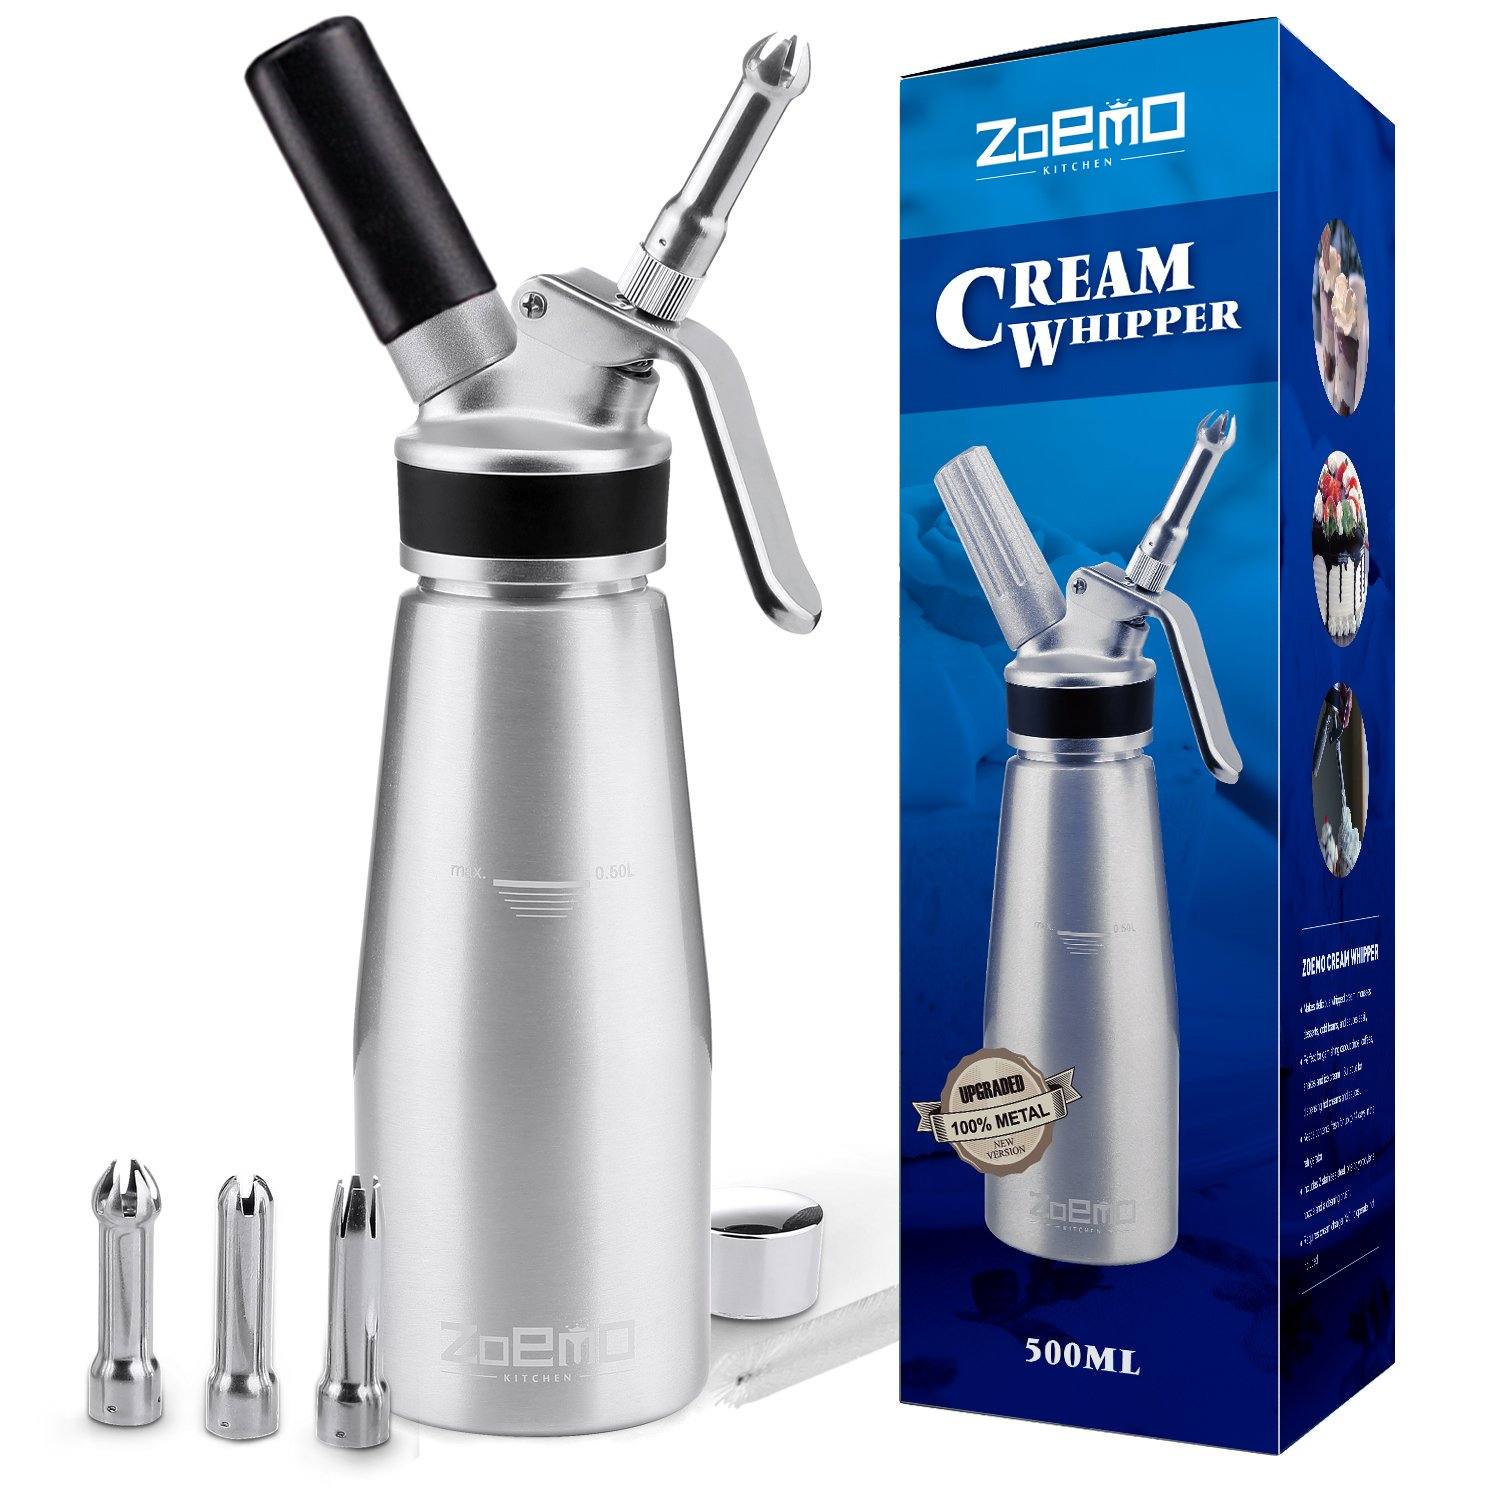 UPGRADED All Metal Whipped Cream Dispenser by ZOEMO - Reinforced Leak-Free Cream Whipper w/Durable Metal Body & Head, 3 Stainless Steel Decorating Tips - 1 Pint Canister Cream Maker KW01B500